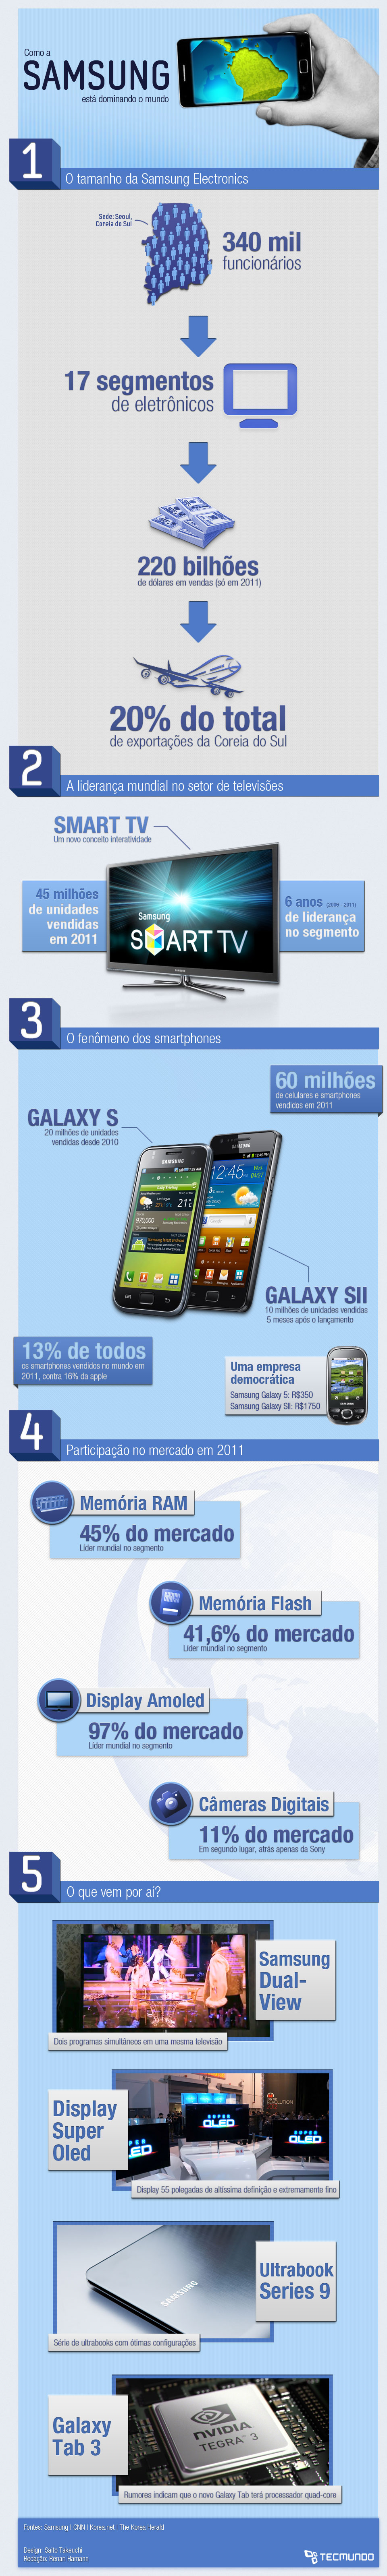 Samsung: a nova Apple do pedaço [infográfico]